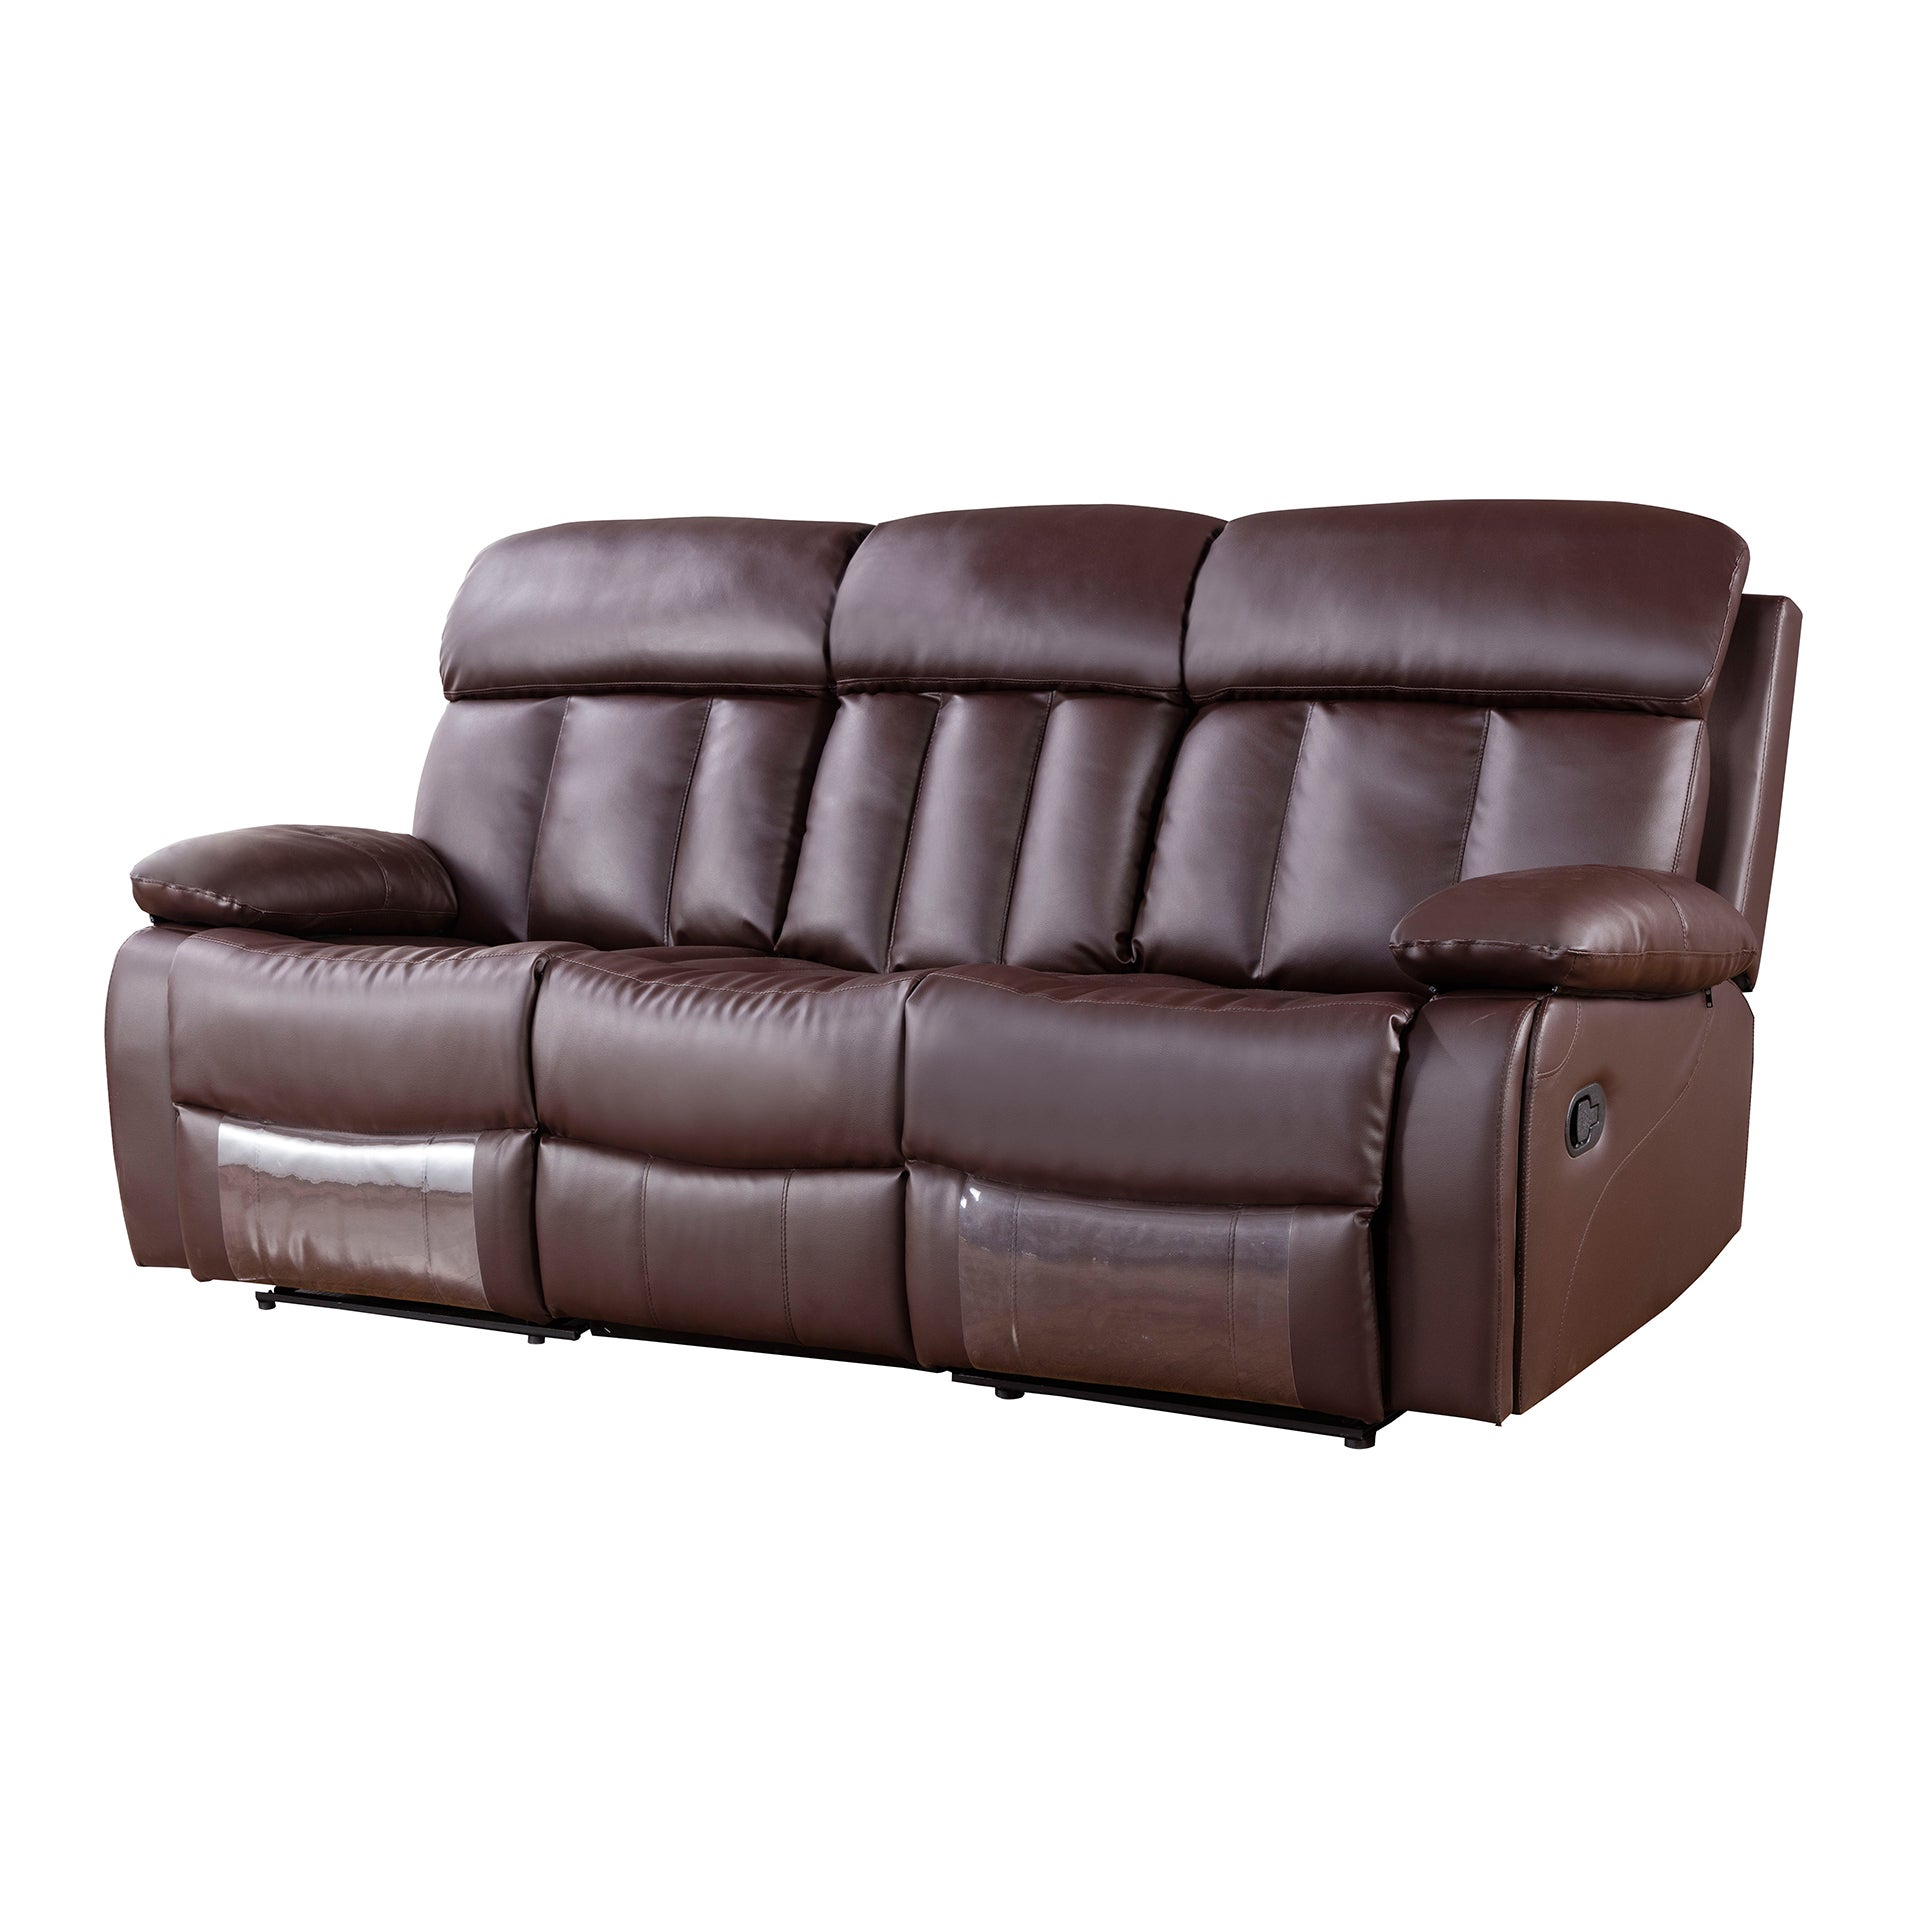 dark brown faux leather recliner sofa free shipping today rh overstock com ashley faux leather reclining sofa buck faux-leather reclining sofa